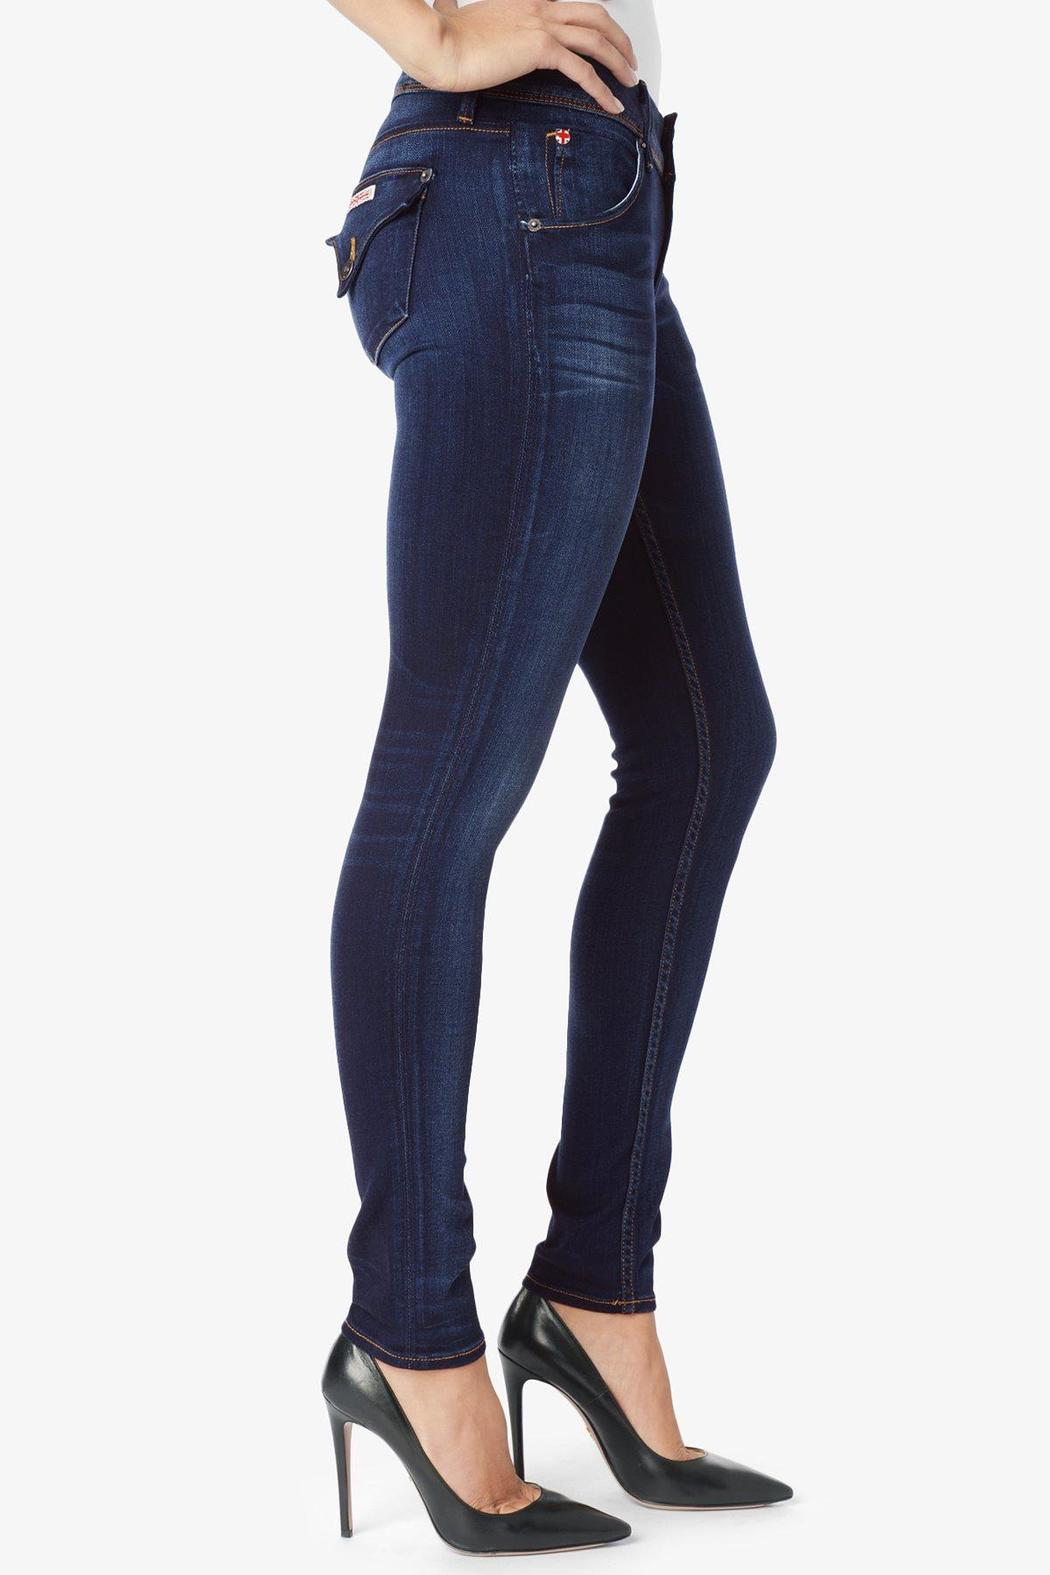 d2ba13097dd5 Hudson Jeans Collin-Midrise Skinny Revelation from North Shore by ...